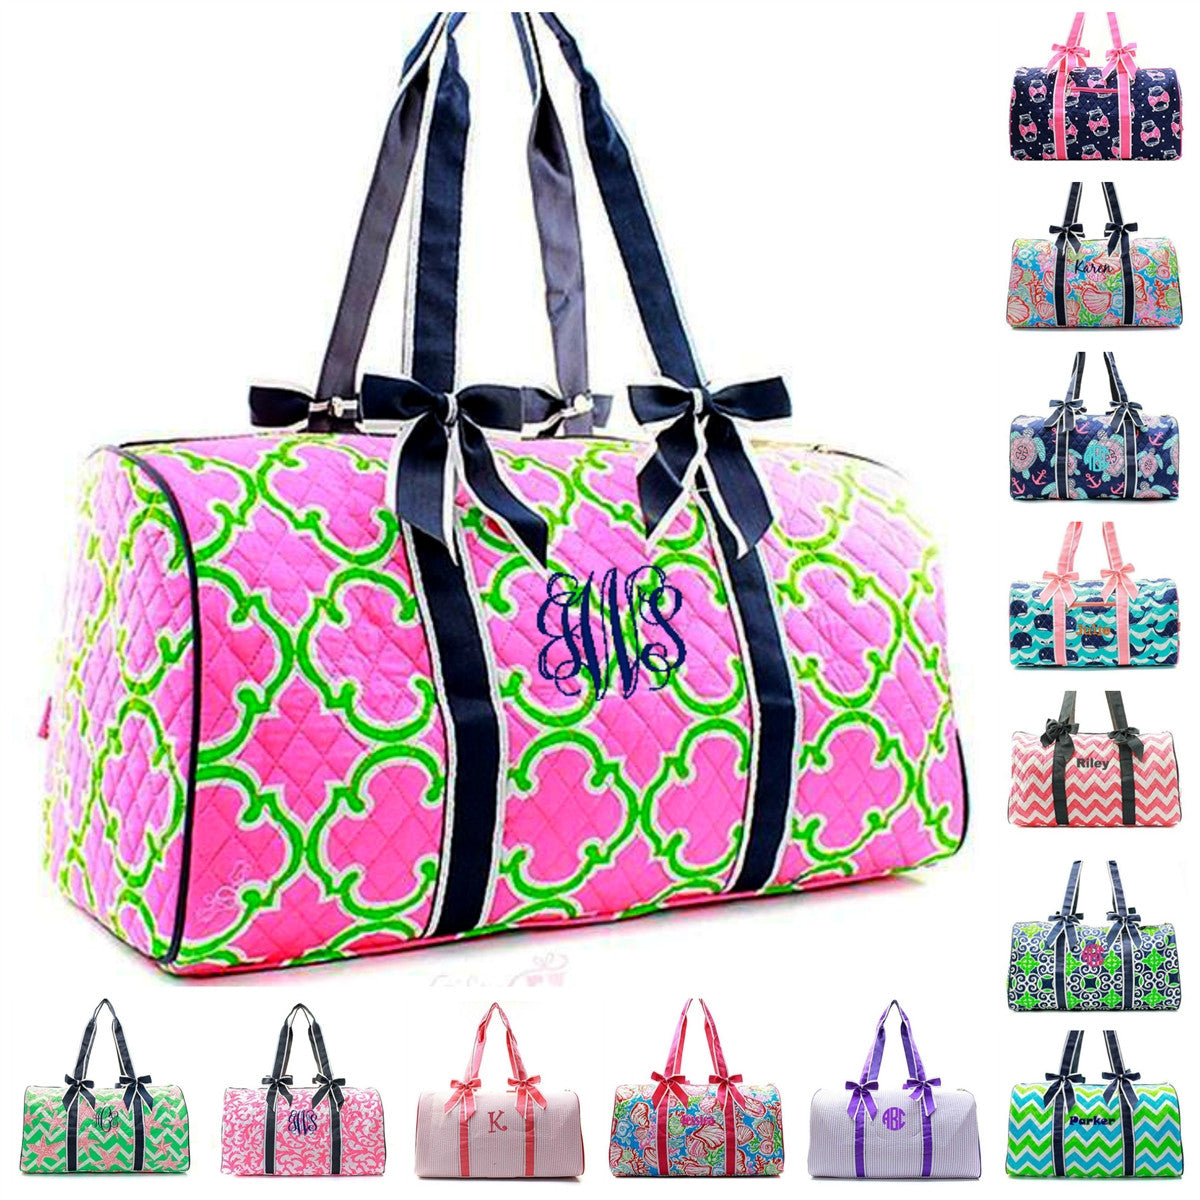 9059ef16e601 Personalized Quilted Duffle Bag Large Weekender – Gifts Happen Here